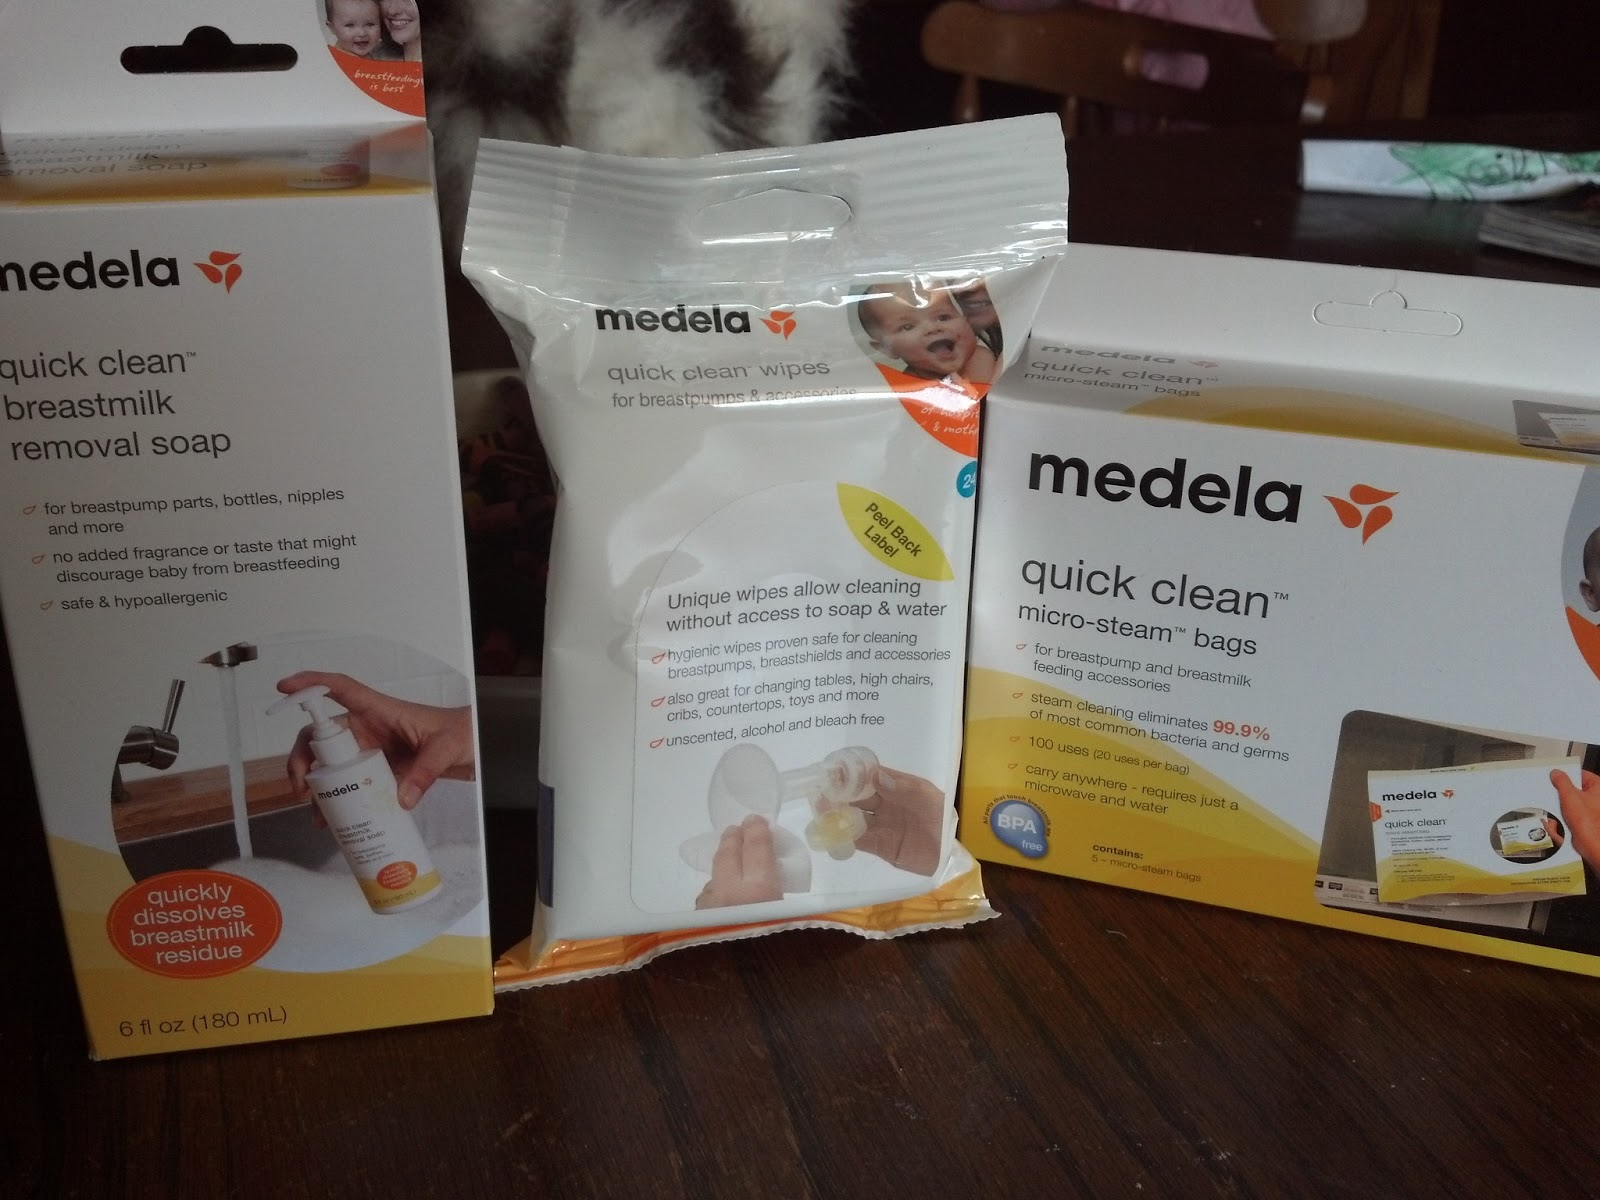 medela quick clean micro-steam bags how to use